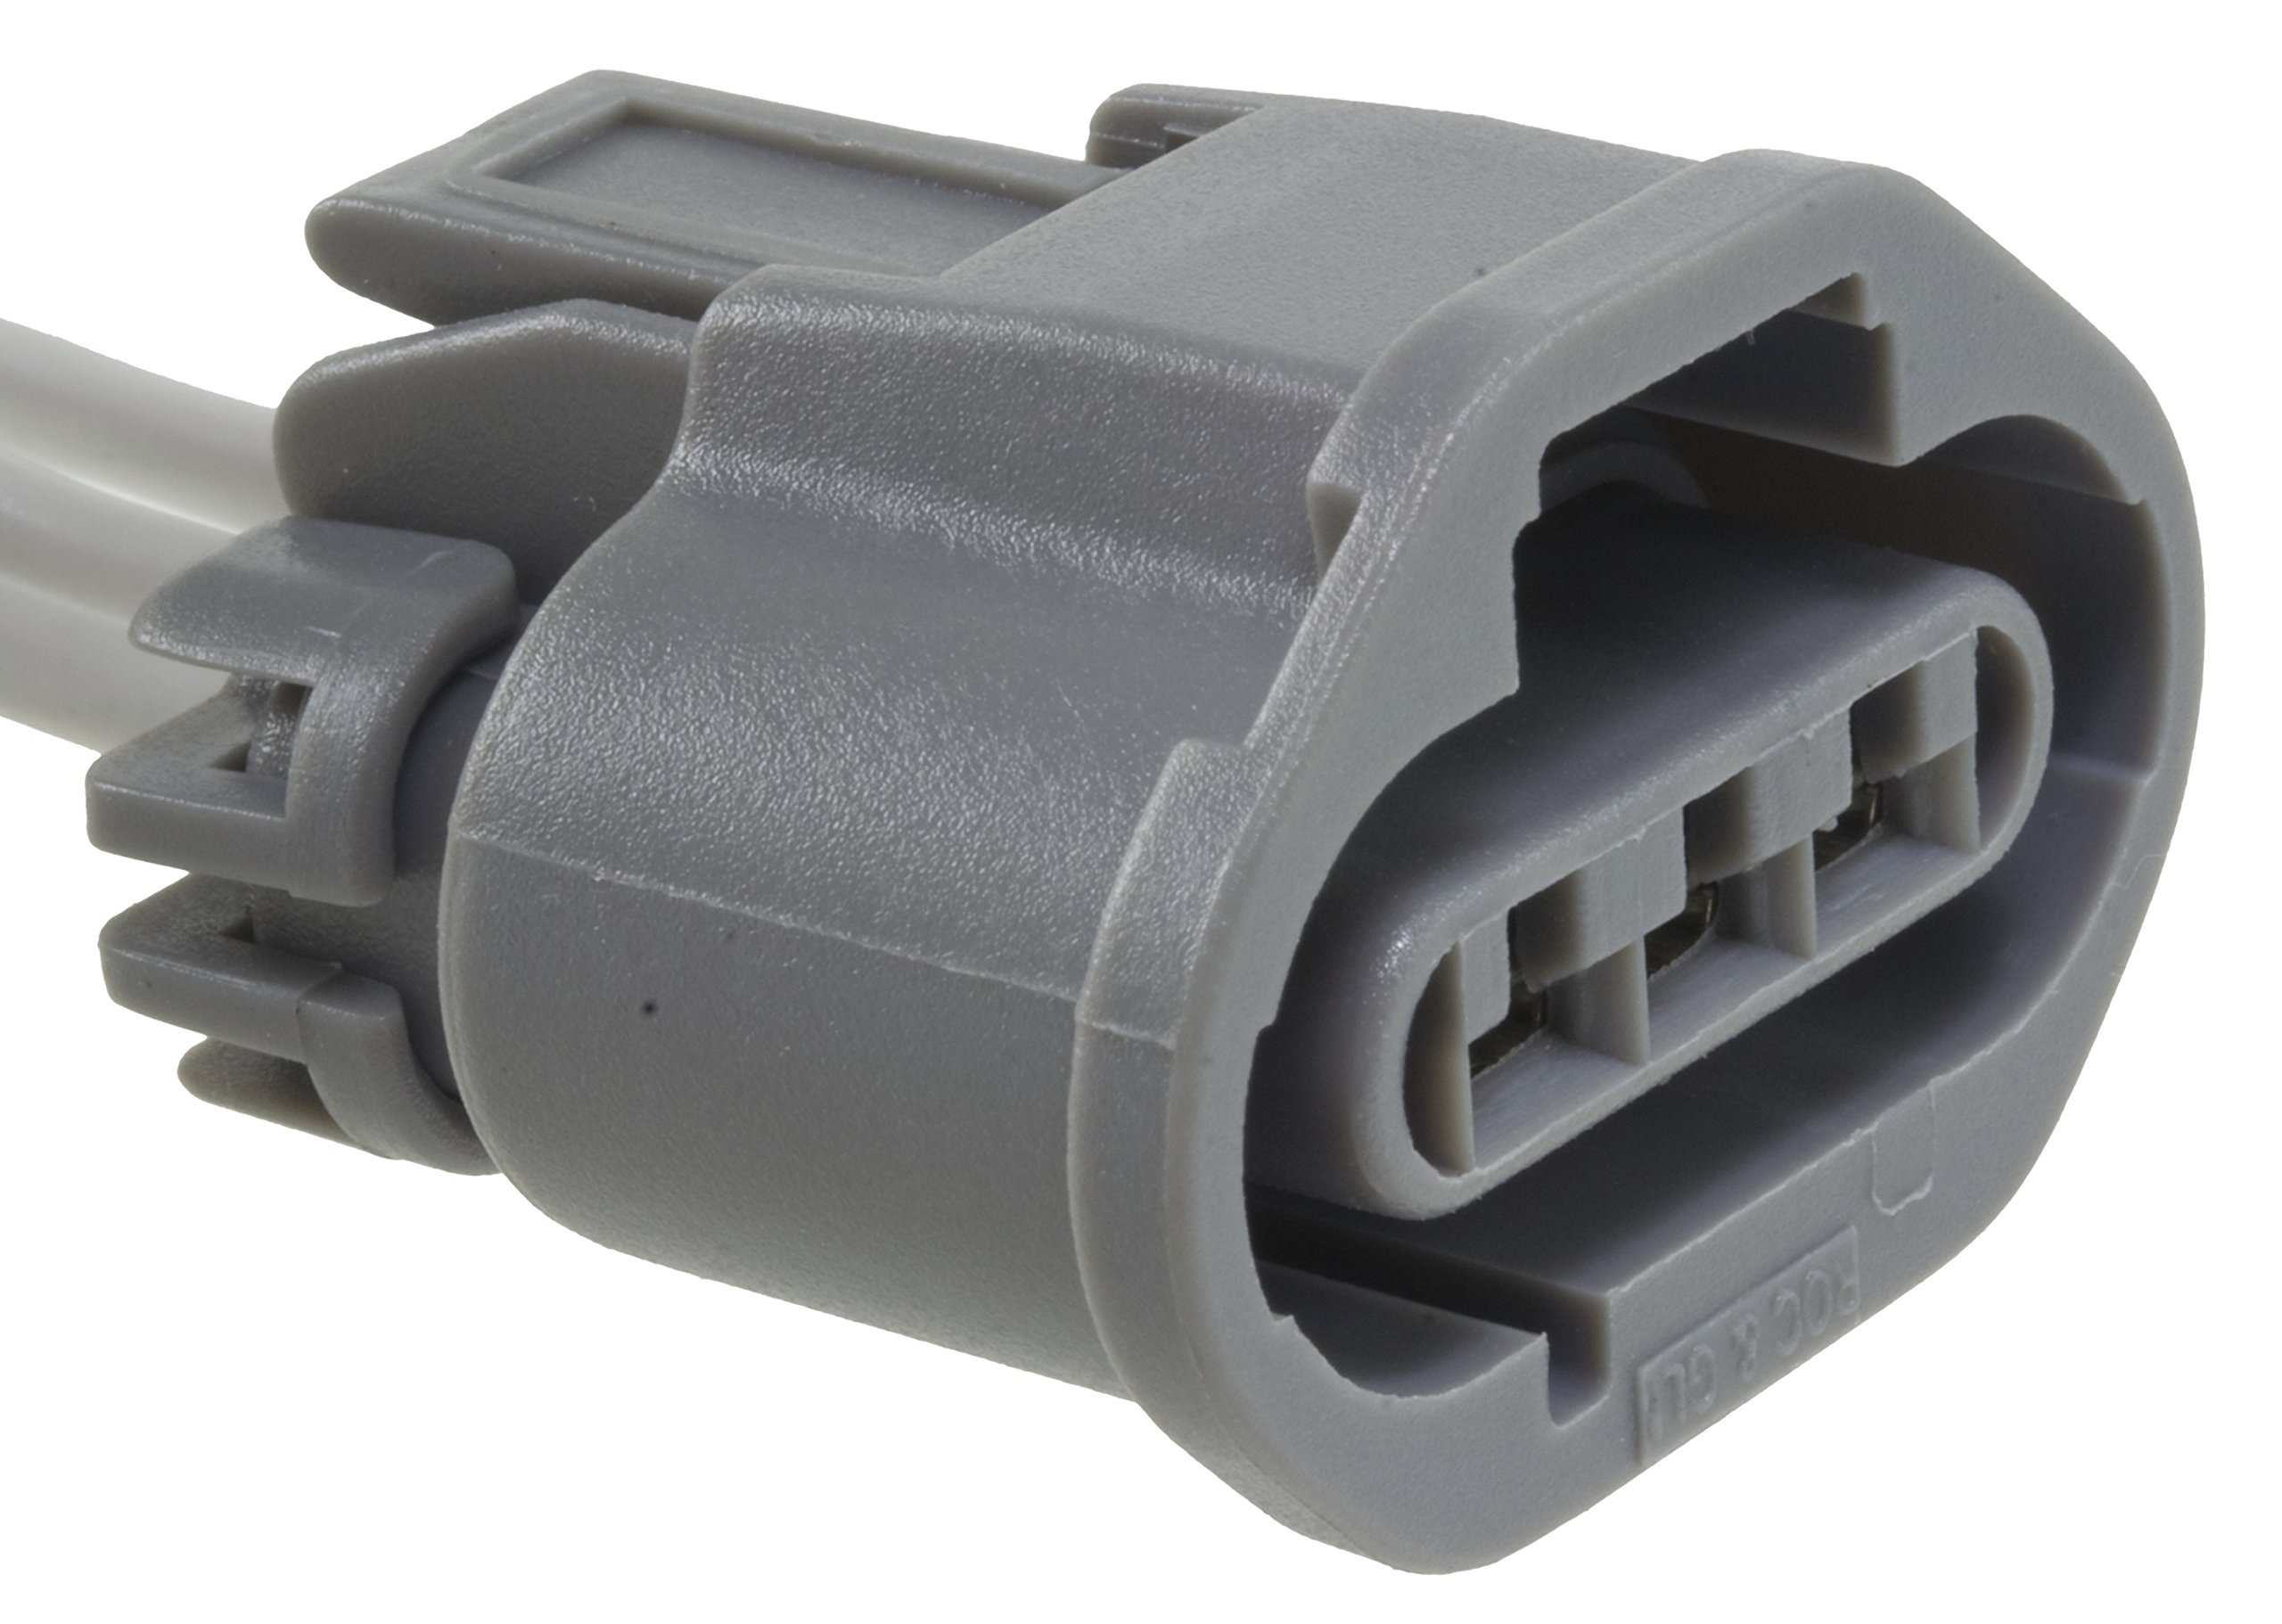 Wells 601 EGR Pressure Feedback Sensor Connector